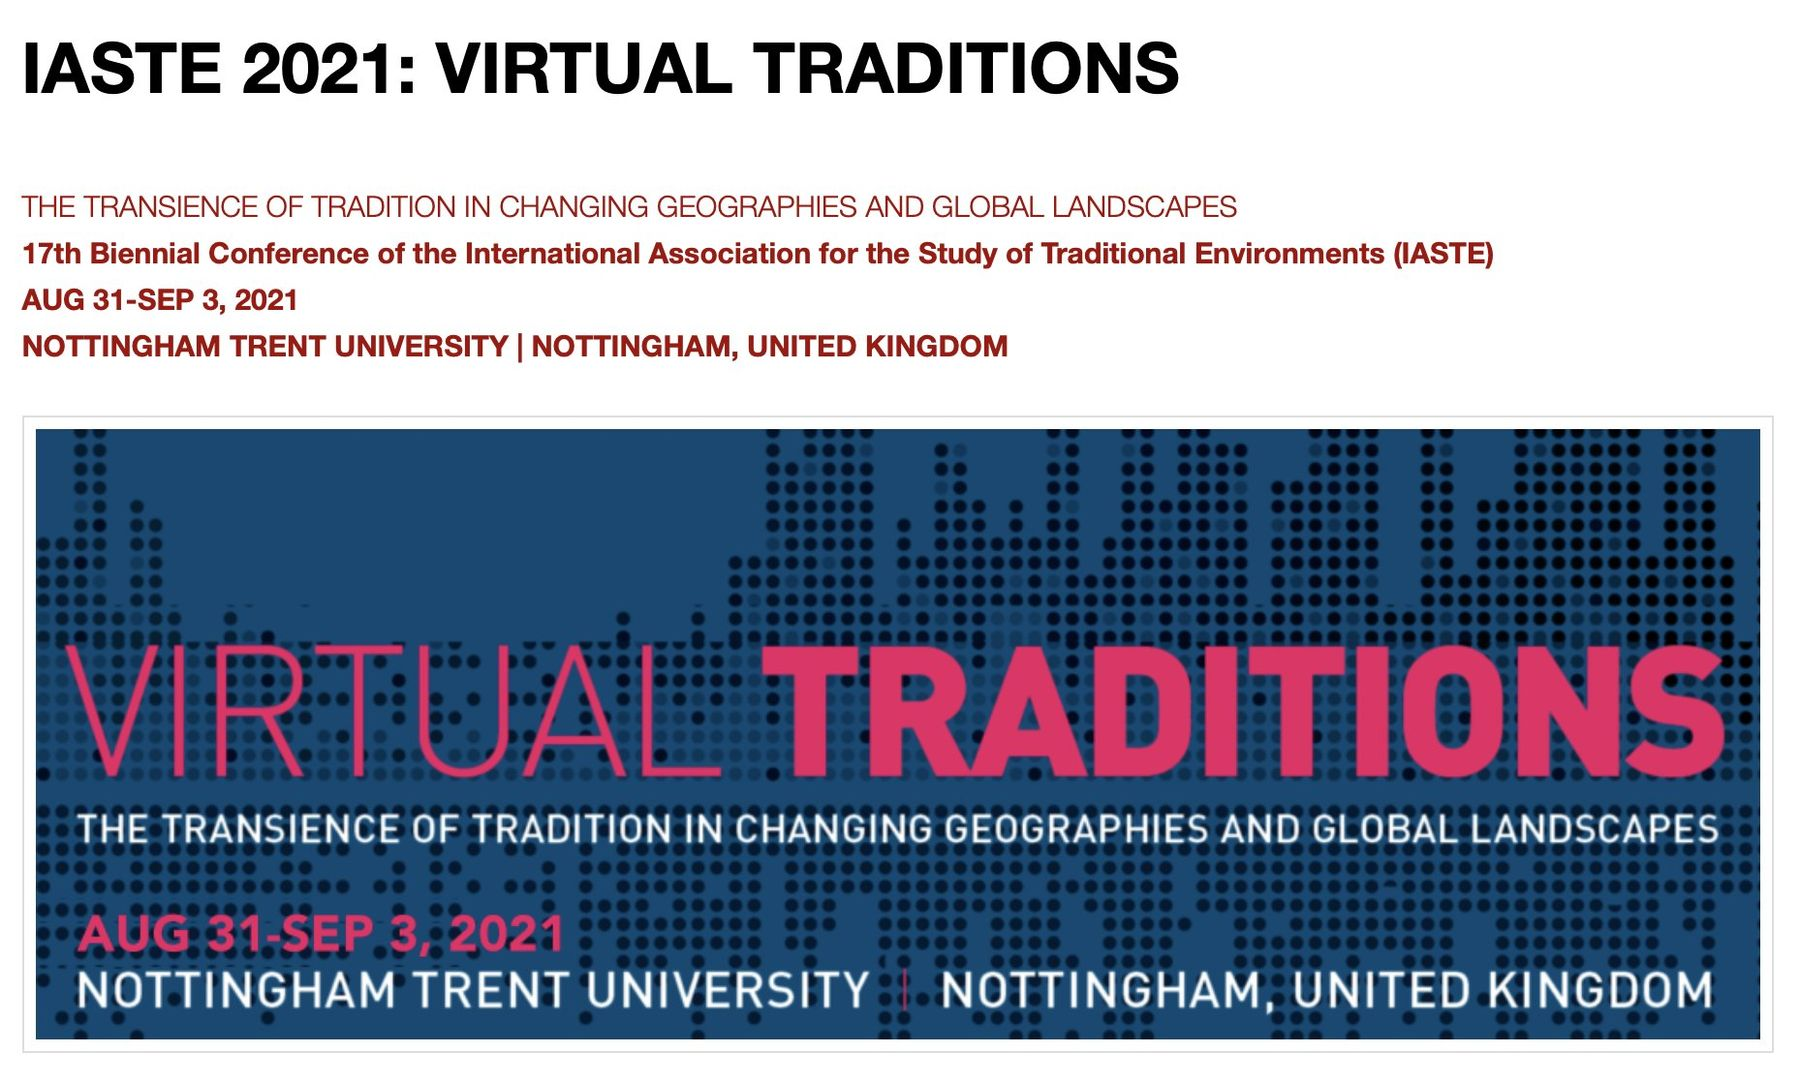 IASTE 2021 Virtual Traditions poster